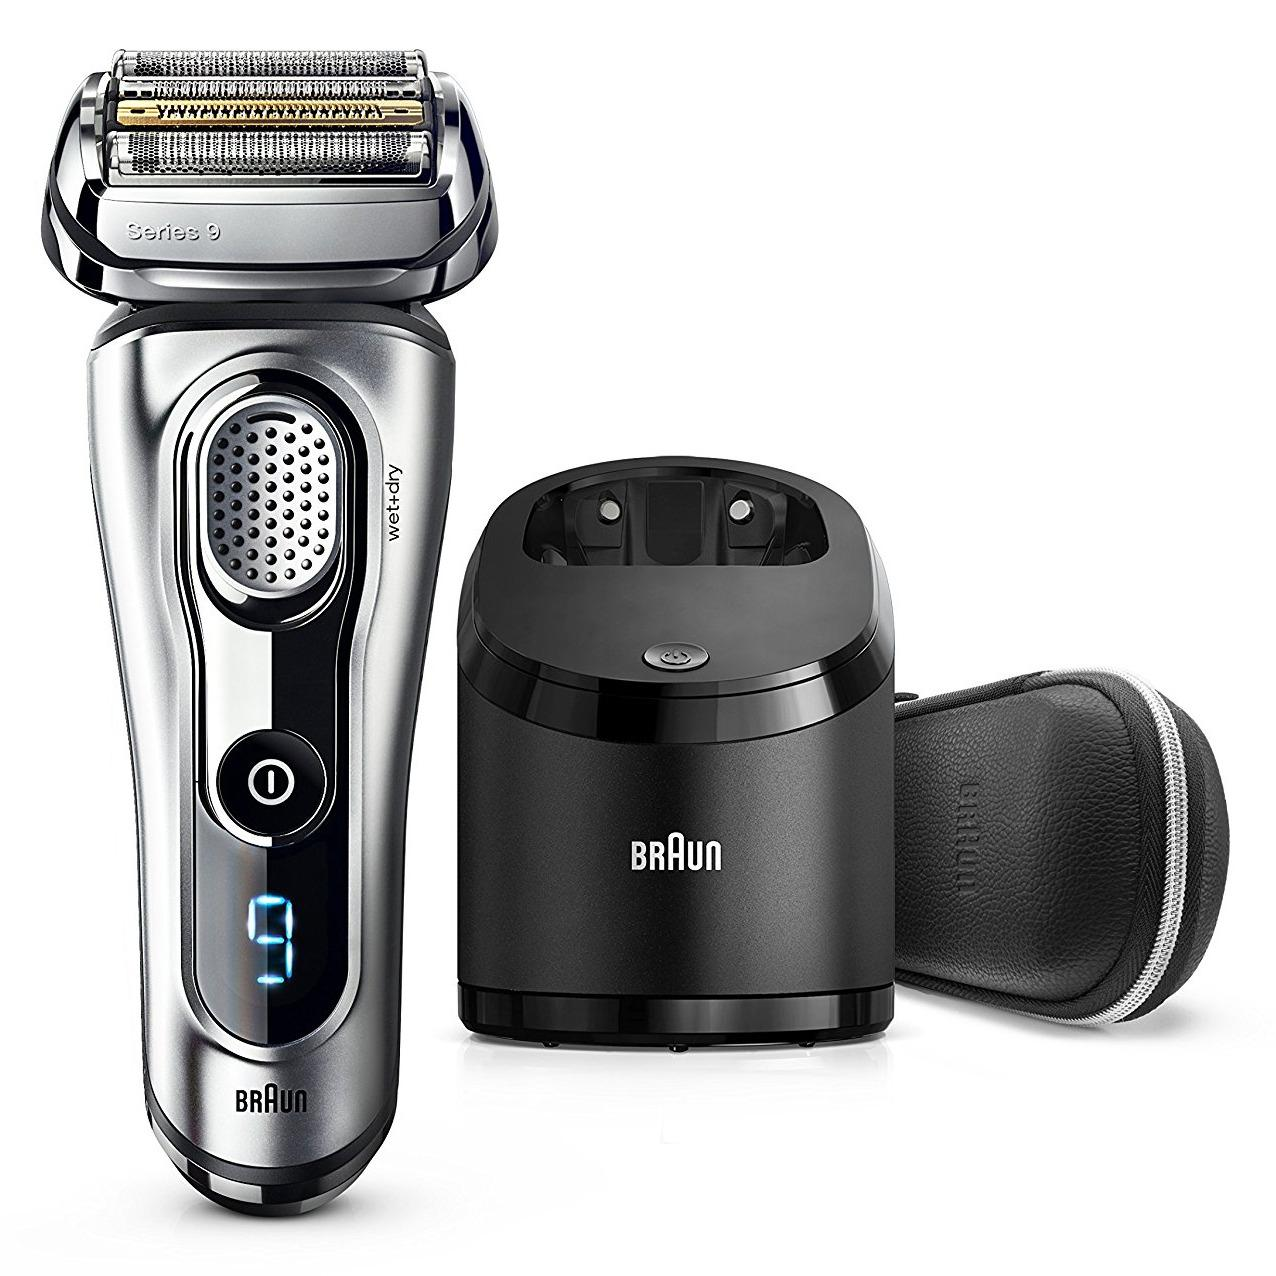 Low Price Braun Series 9 9296Cc Men S Electric Foil Shaver Wet And Dry Leather Case Edition With Clean And Renew Charge Station Pop Up Trimmer Rechargeable And Cordless Razor Chrome